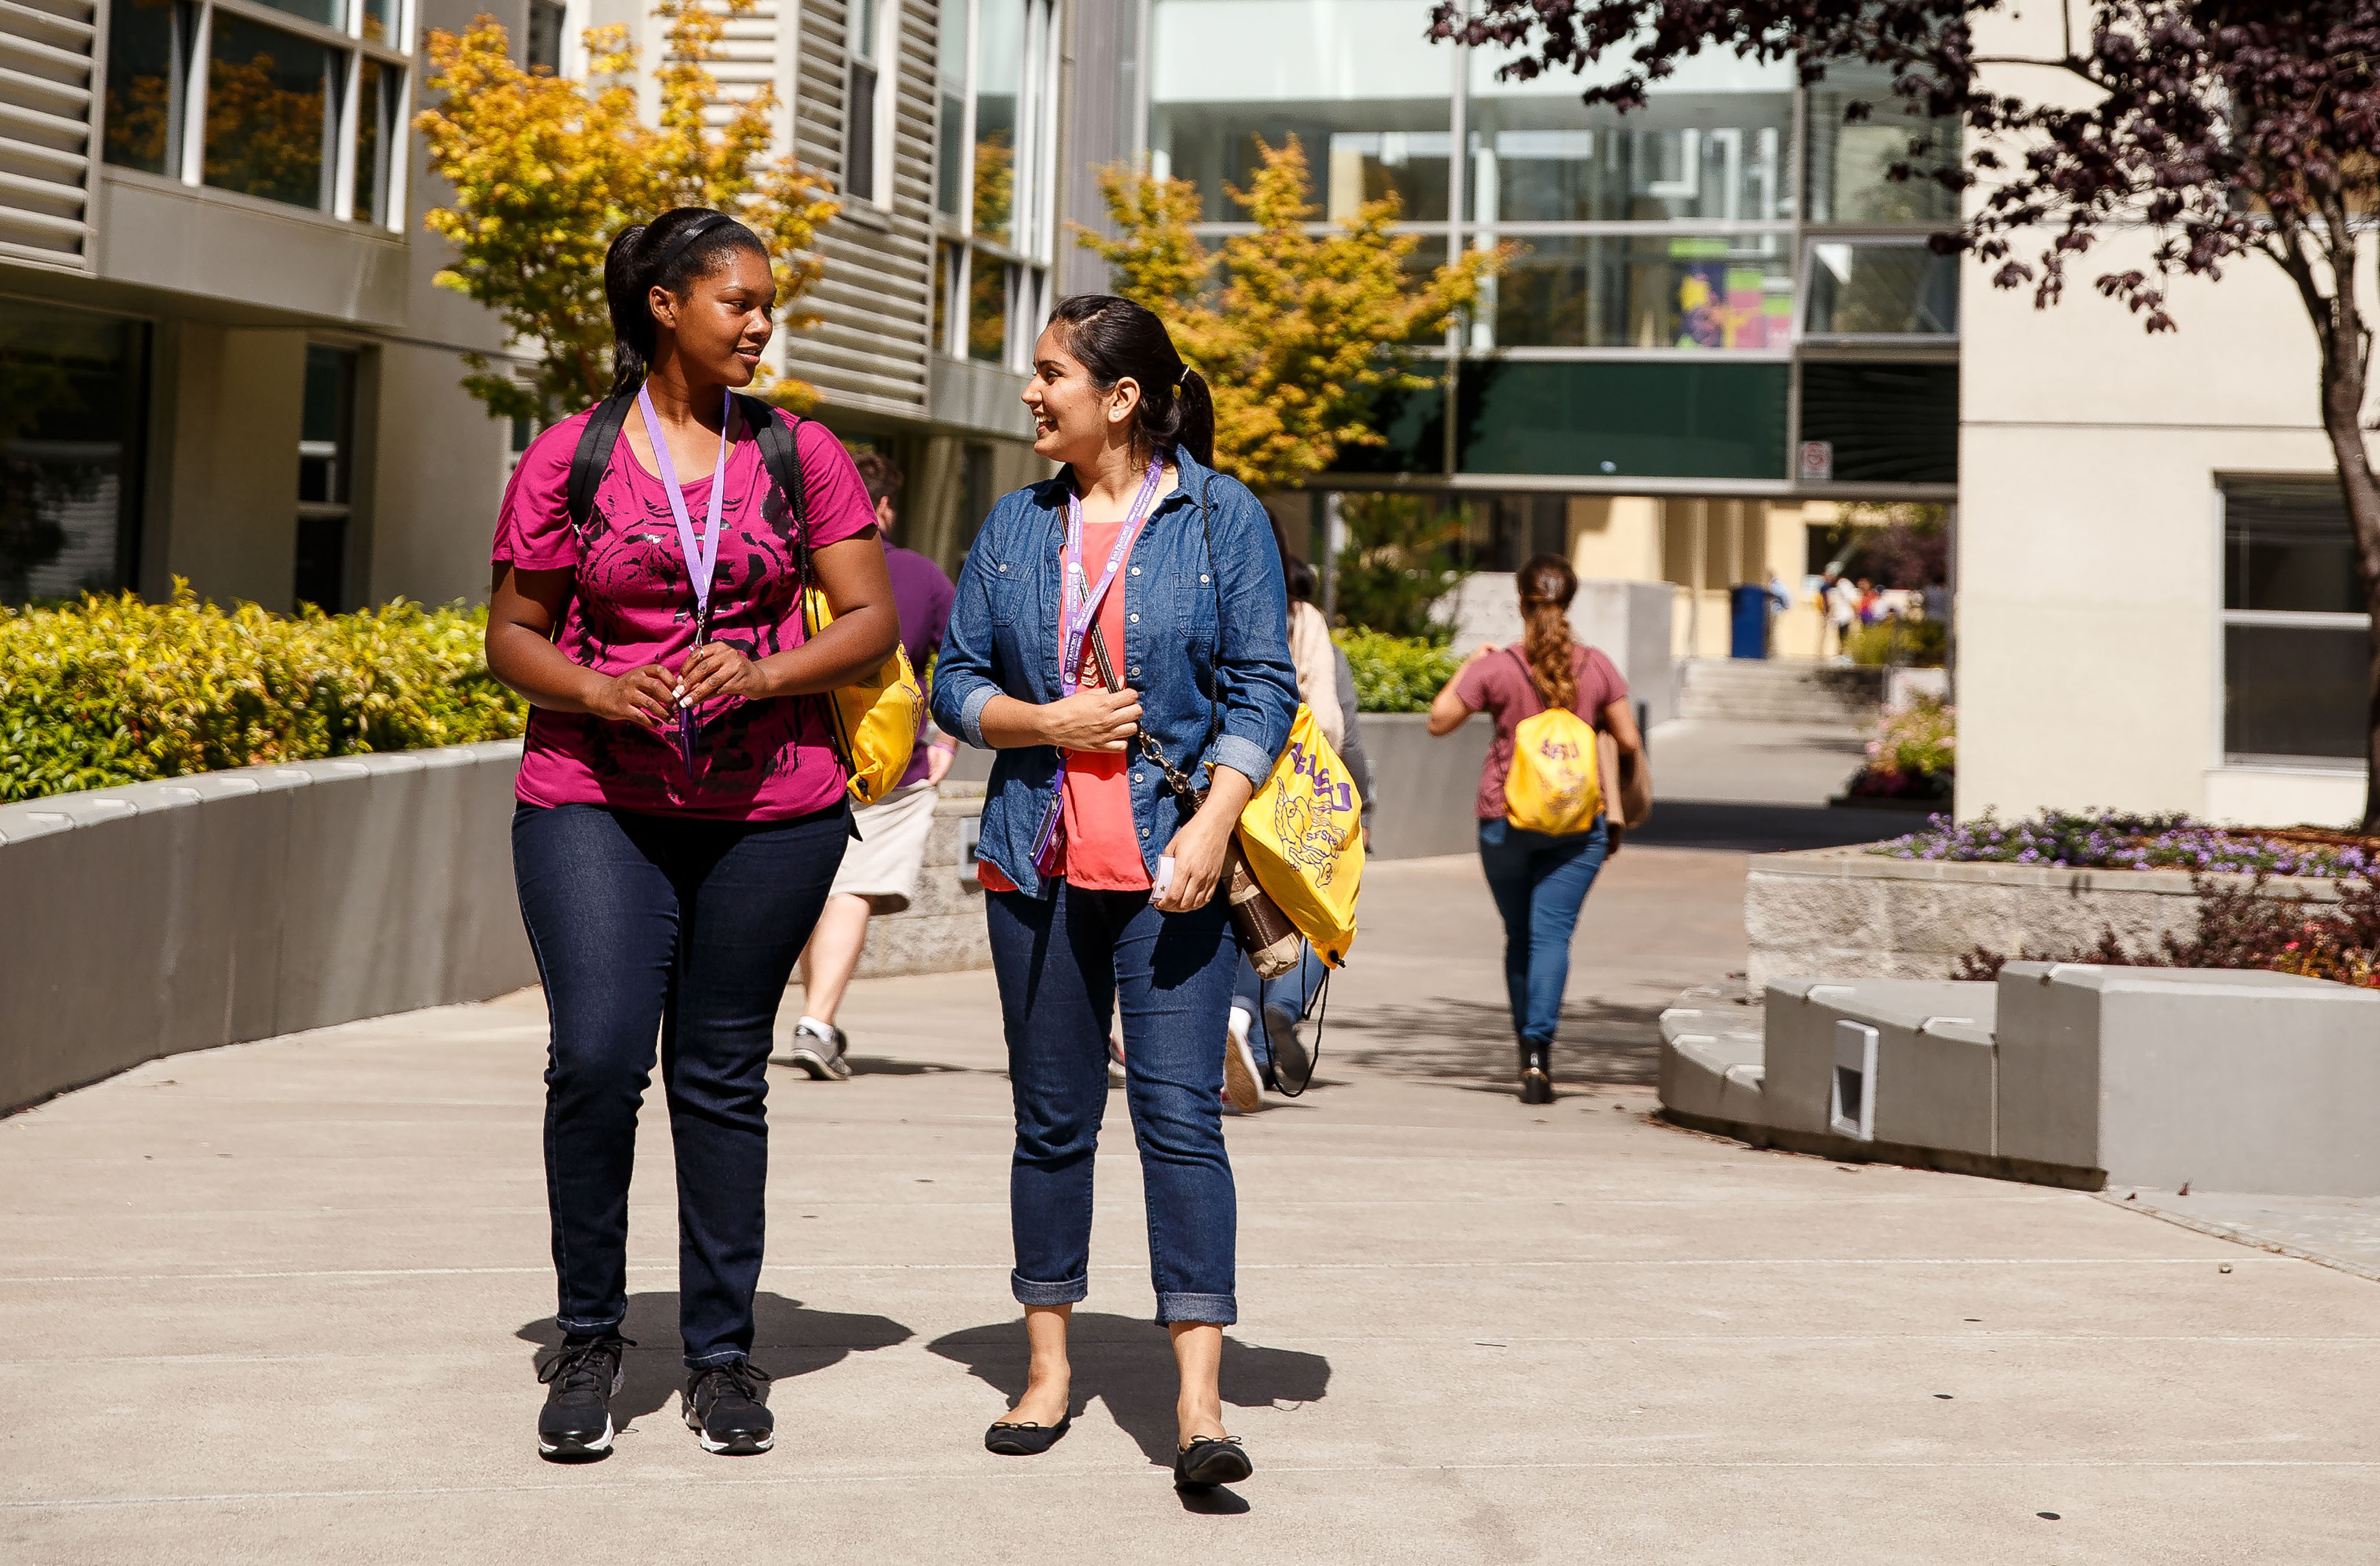 Students walking in front of student housing building